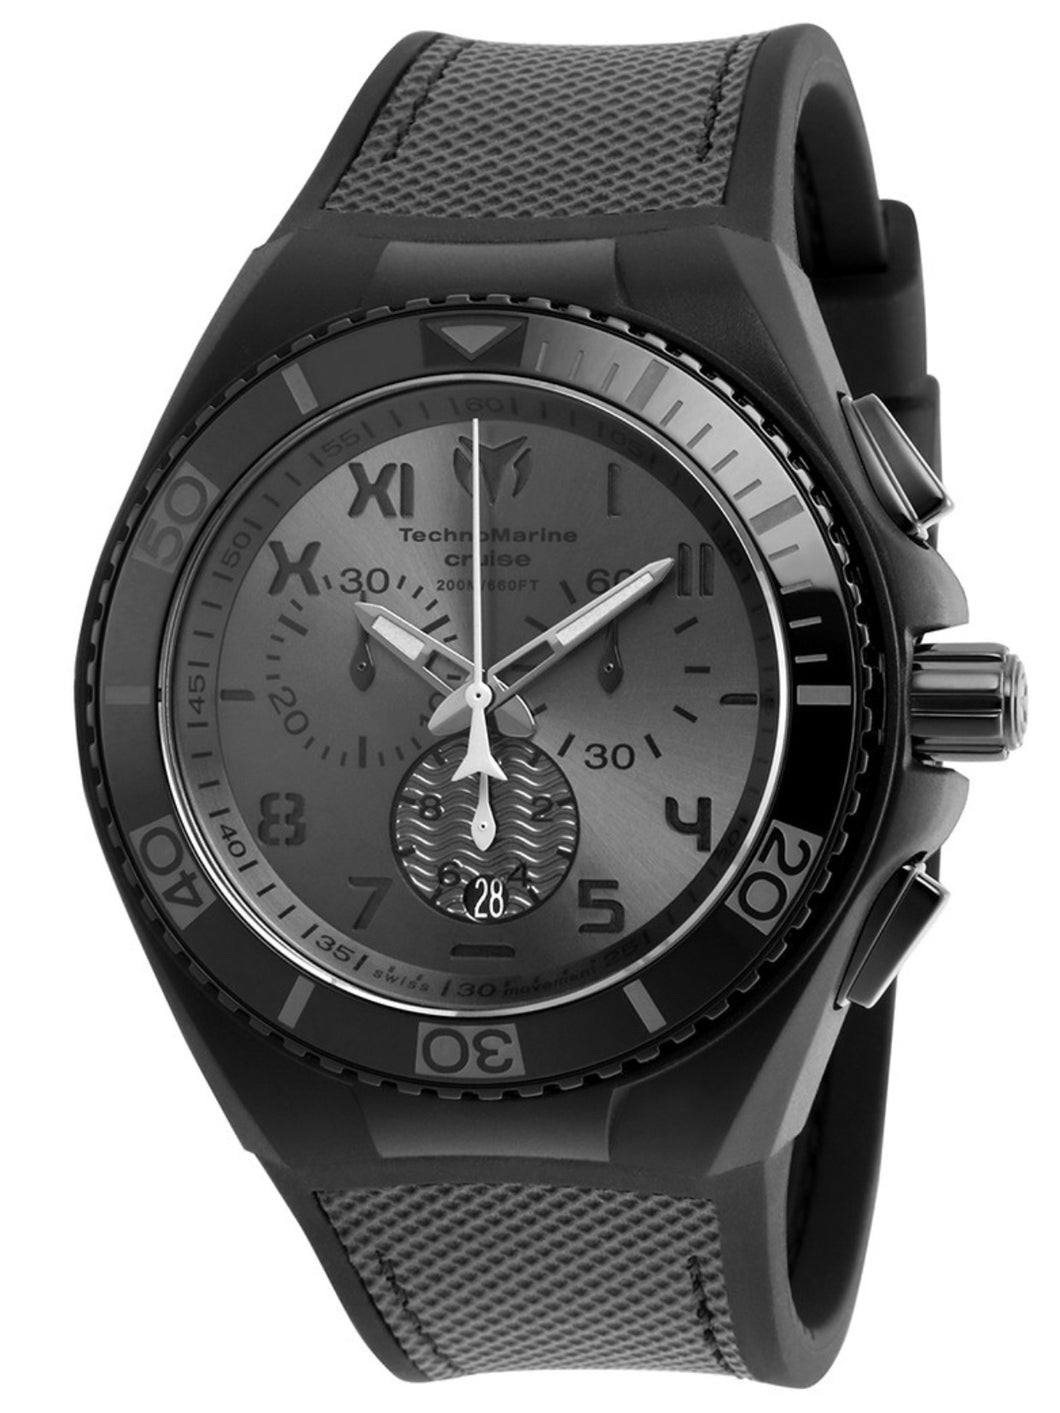 TECHNOMARINE CRUISE 46.65MM  DIAL 5040.D QUARTZ - MODEL 115008 - Boutique Watches & More